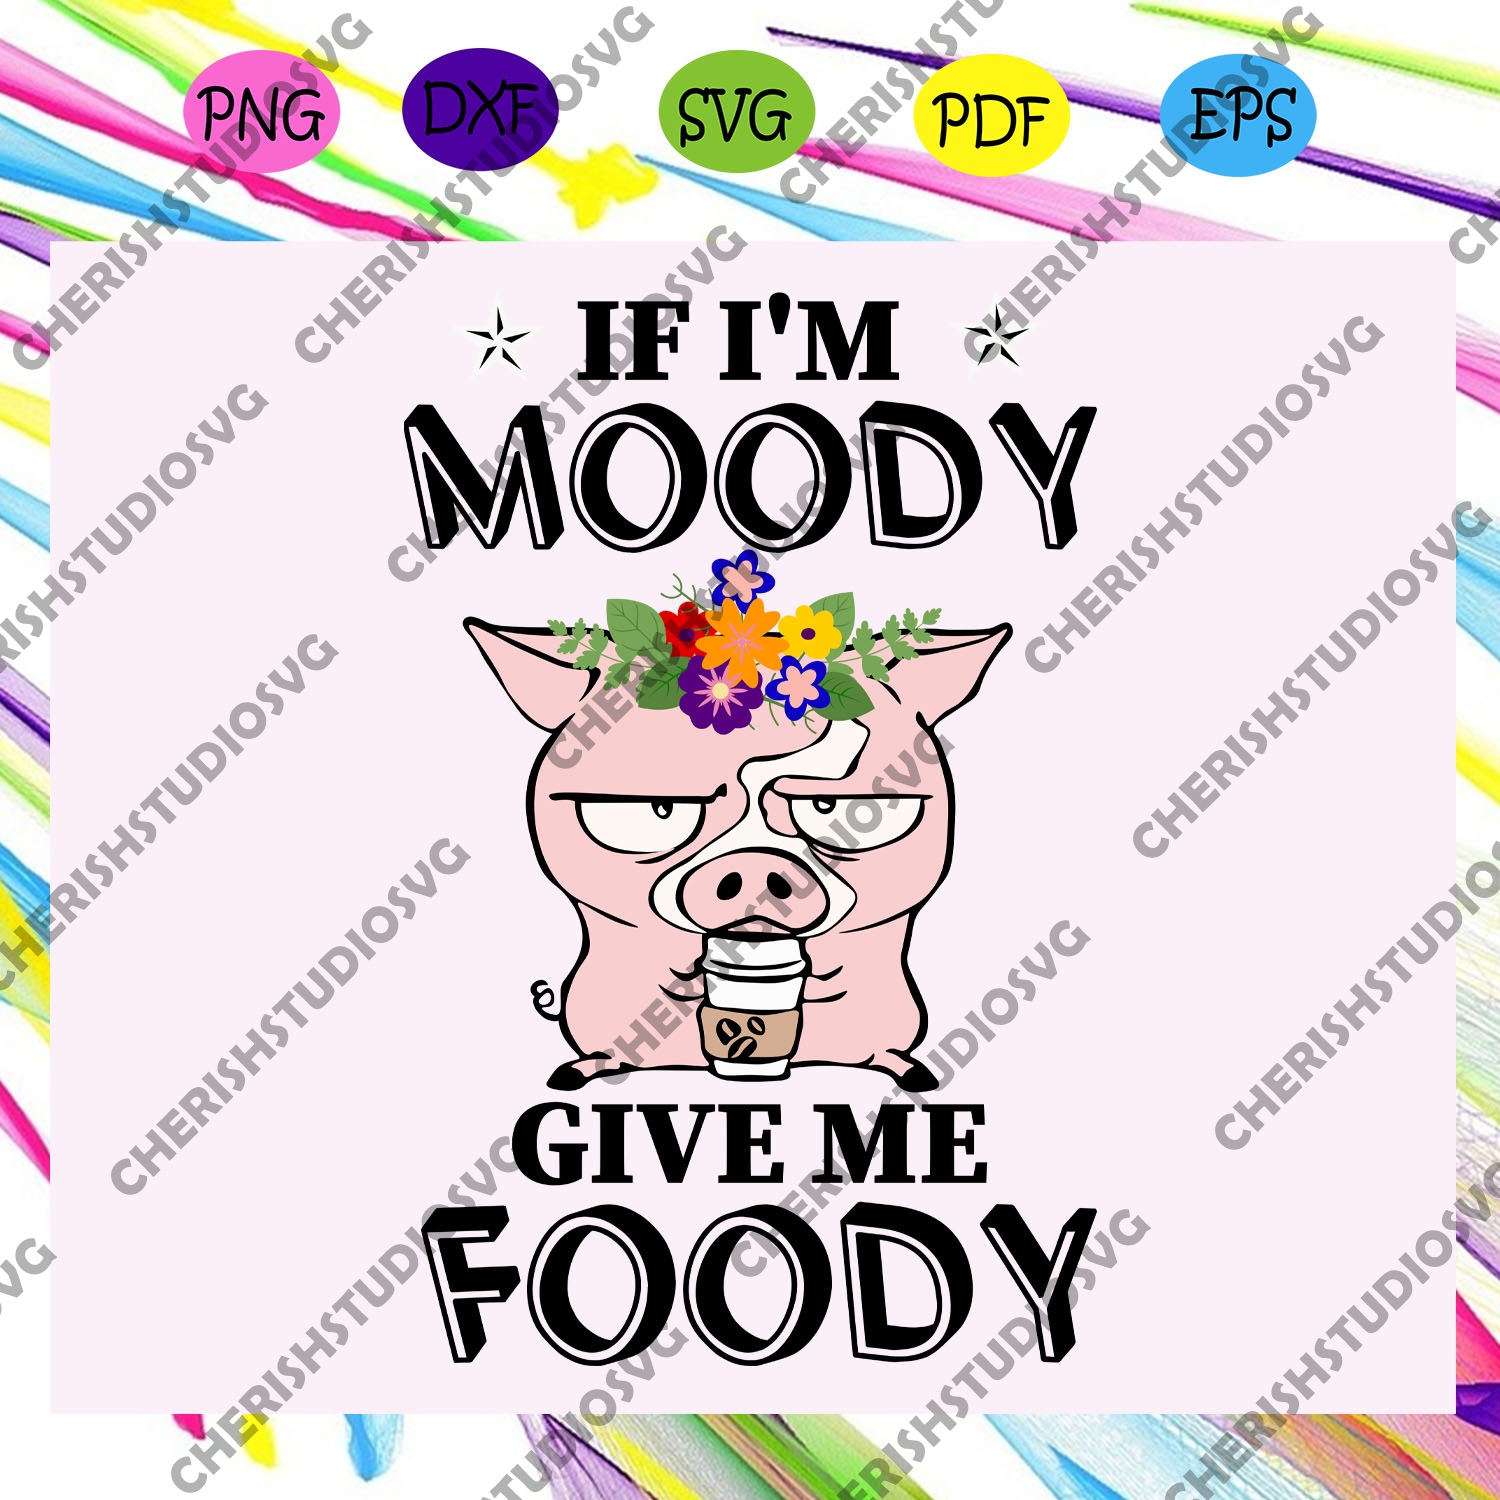 If I'm moody give me foody, food, foodaholic, food lover svg, food lover gift, food lover party,trending svg For Silhouette, Files For Cricut, SVG, DXF, EPS, PNG Instant Download